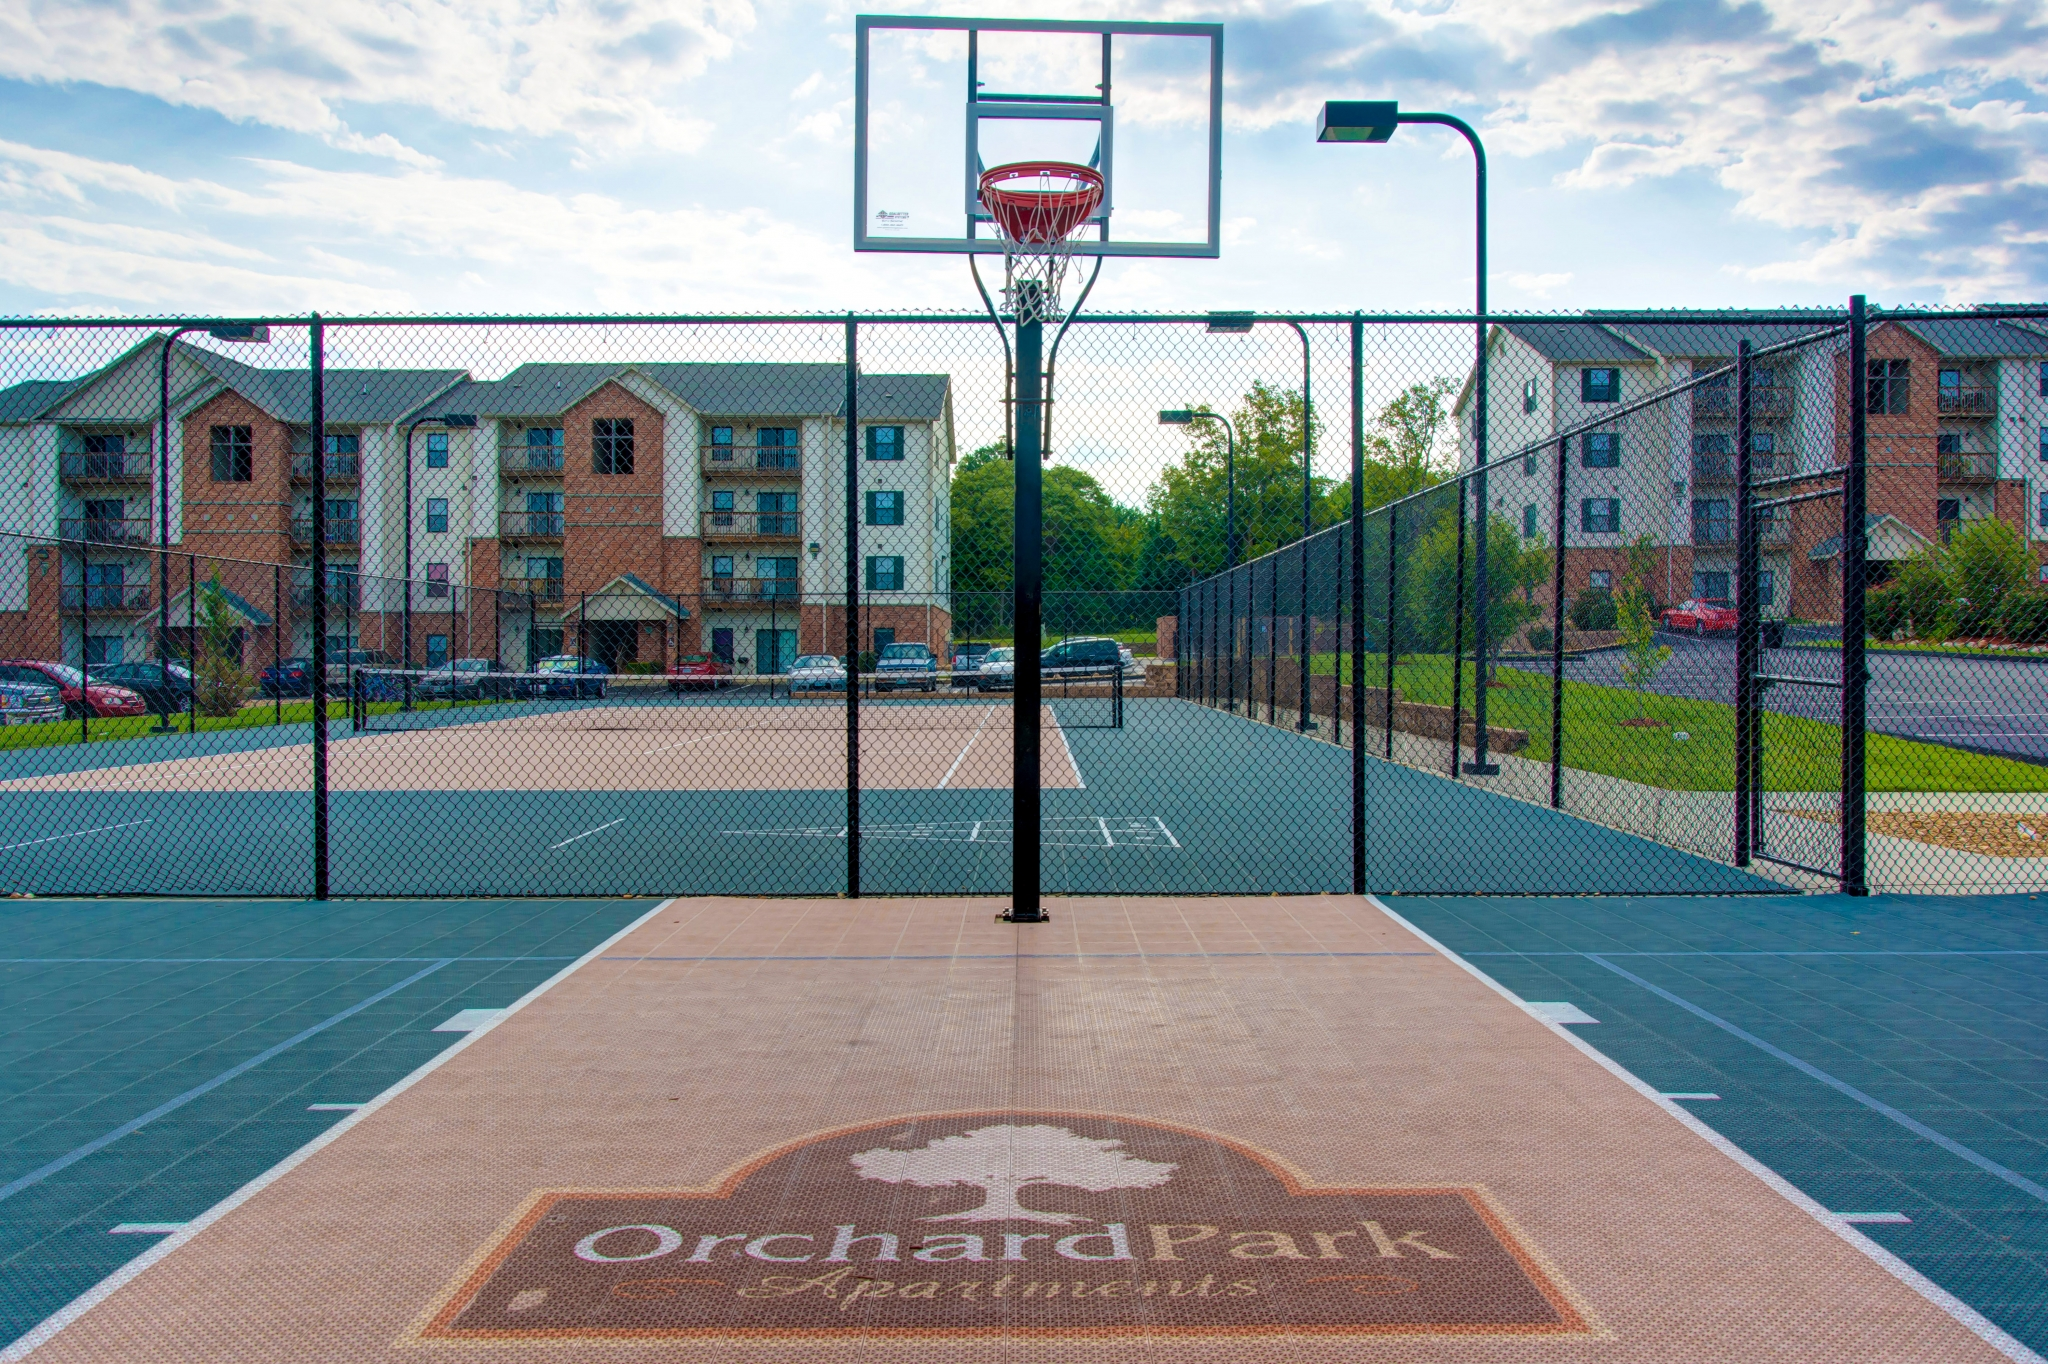 Orchard Park Apartments amenity outdoor basketball court and tennis court